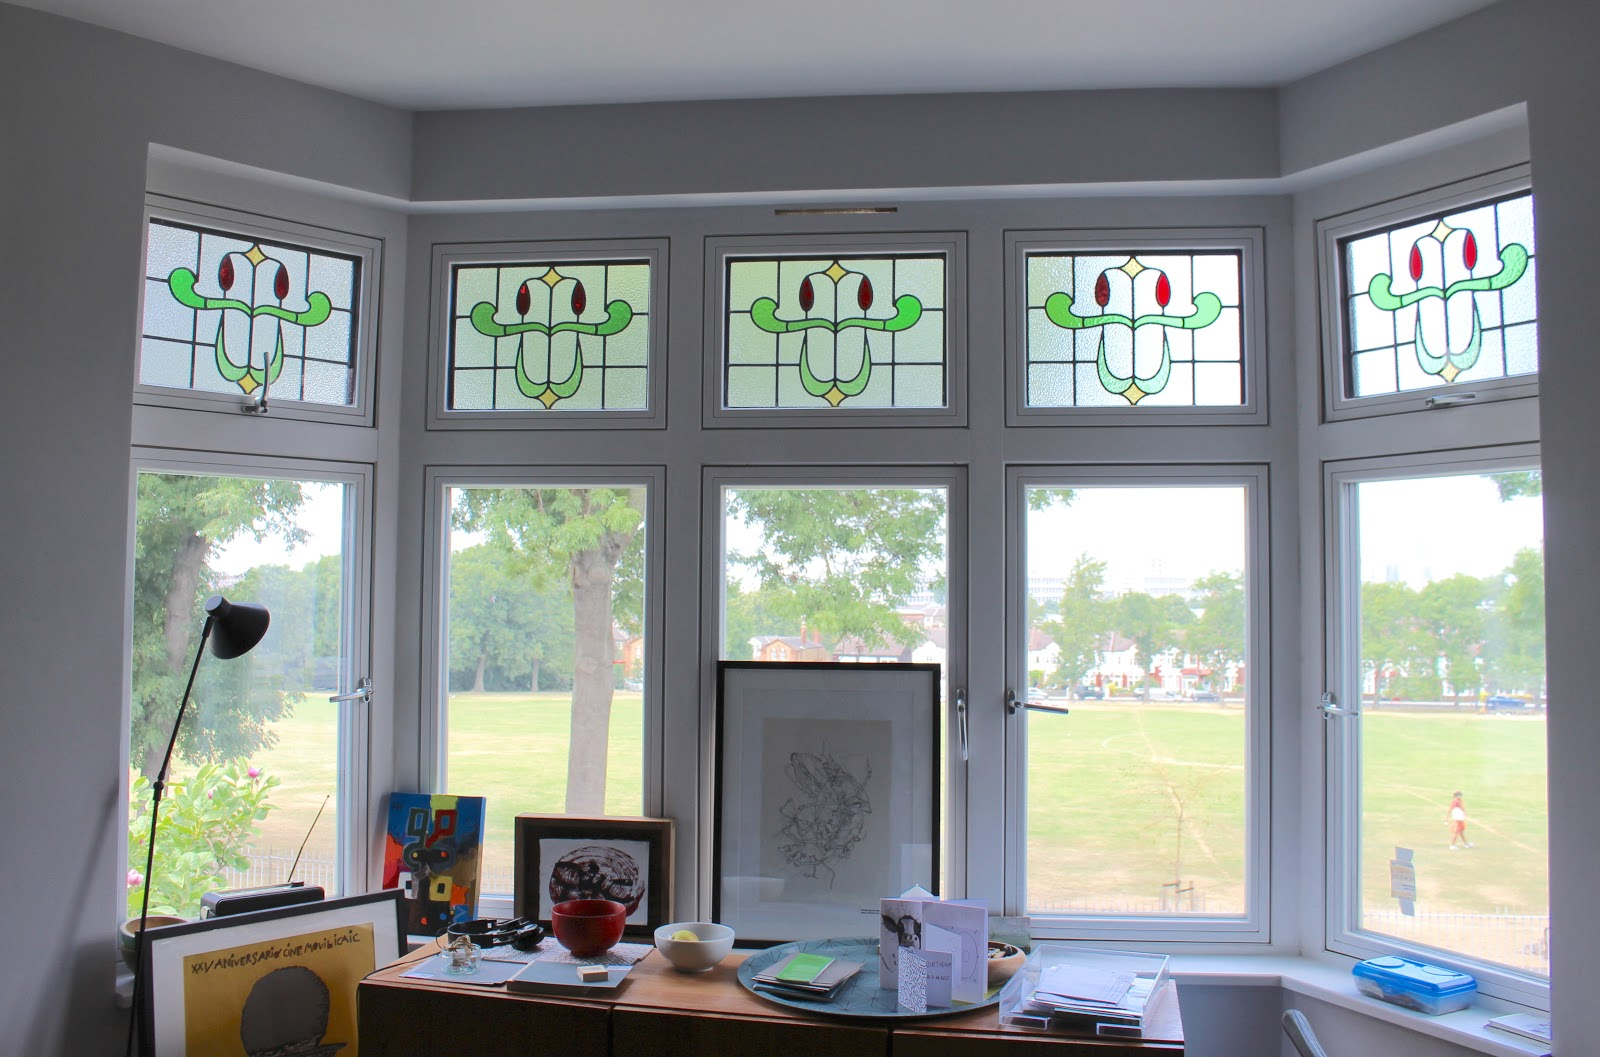 triple-glazed stained glass window